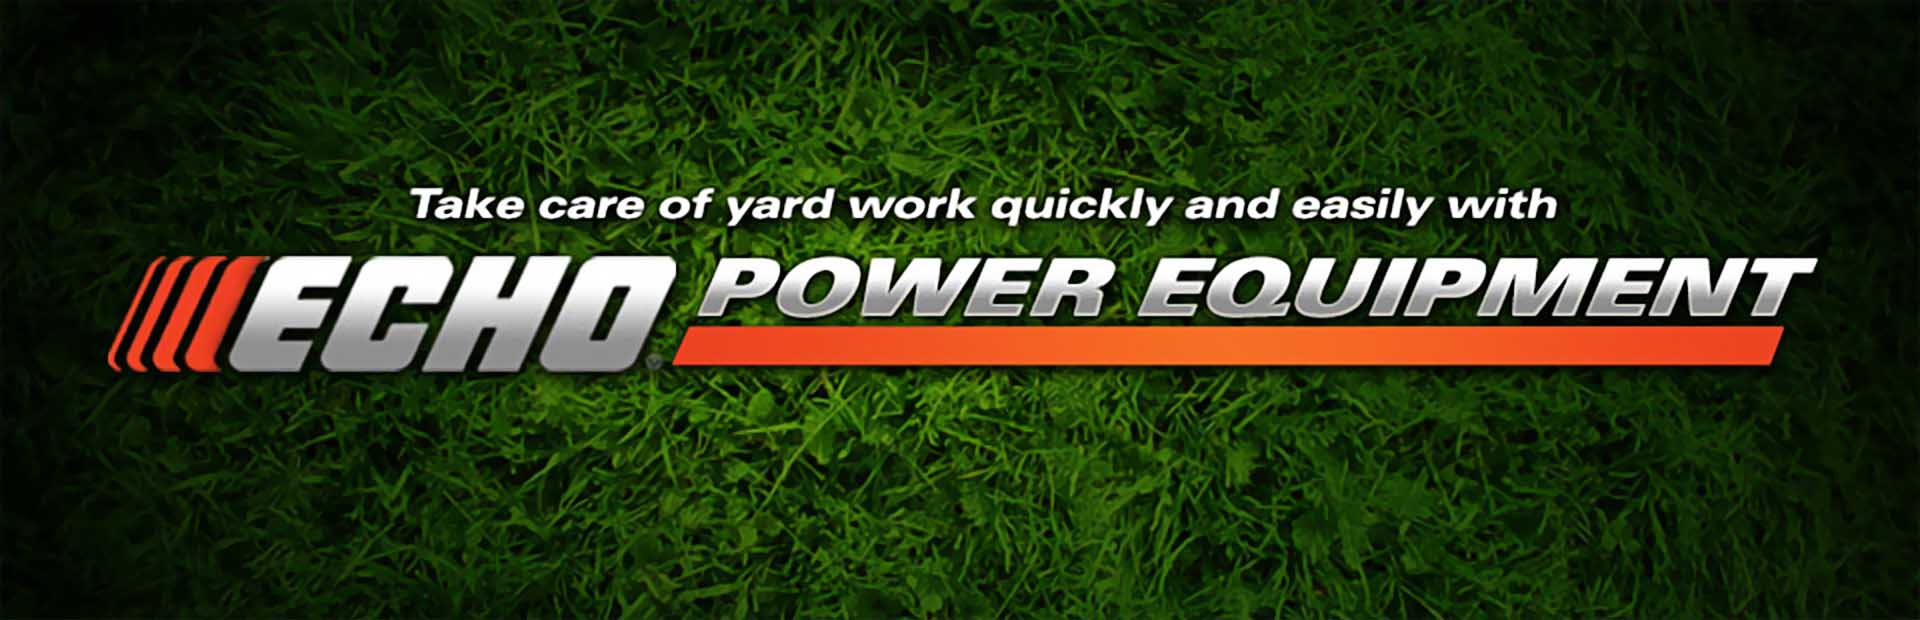 Click here to view ECHO power equipment.